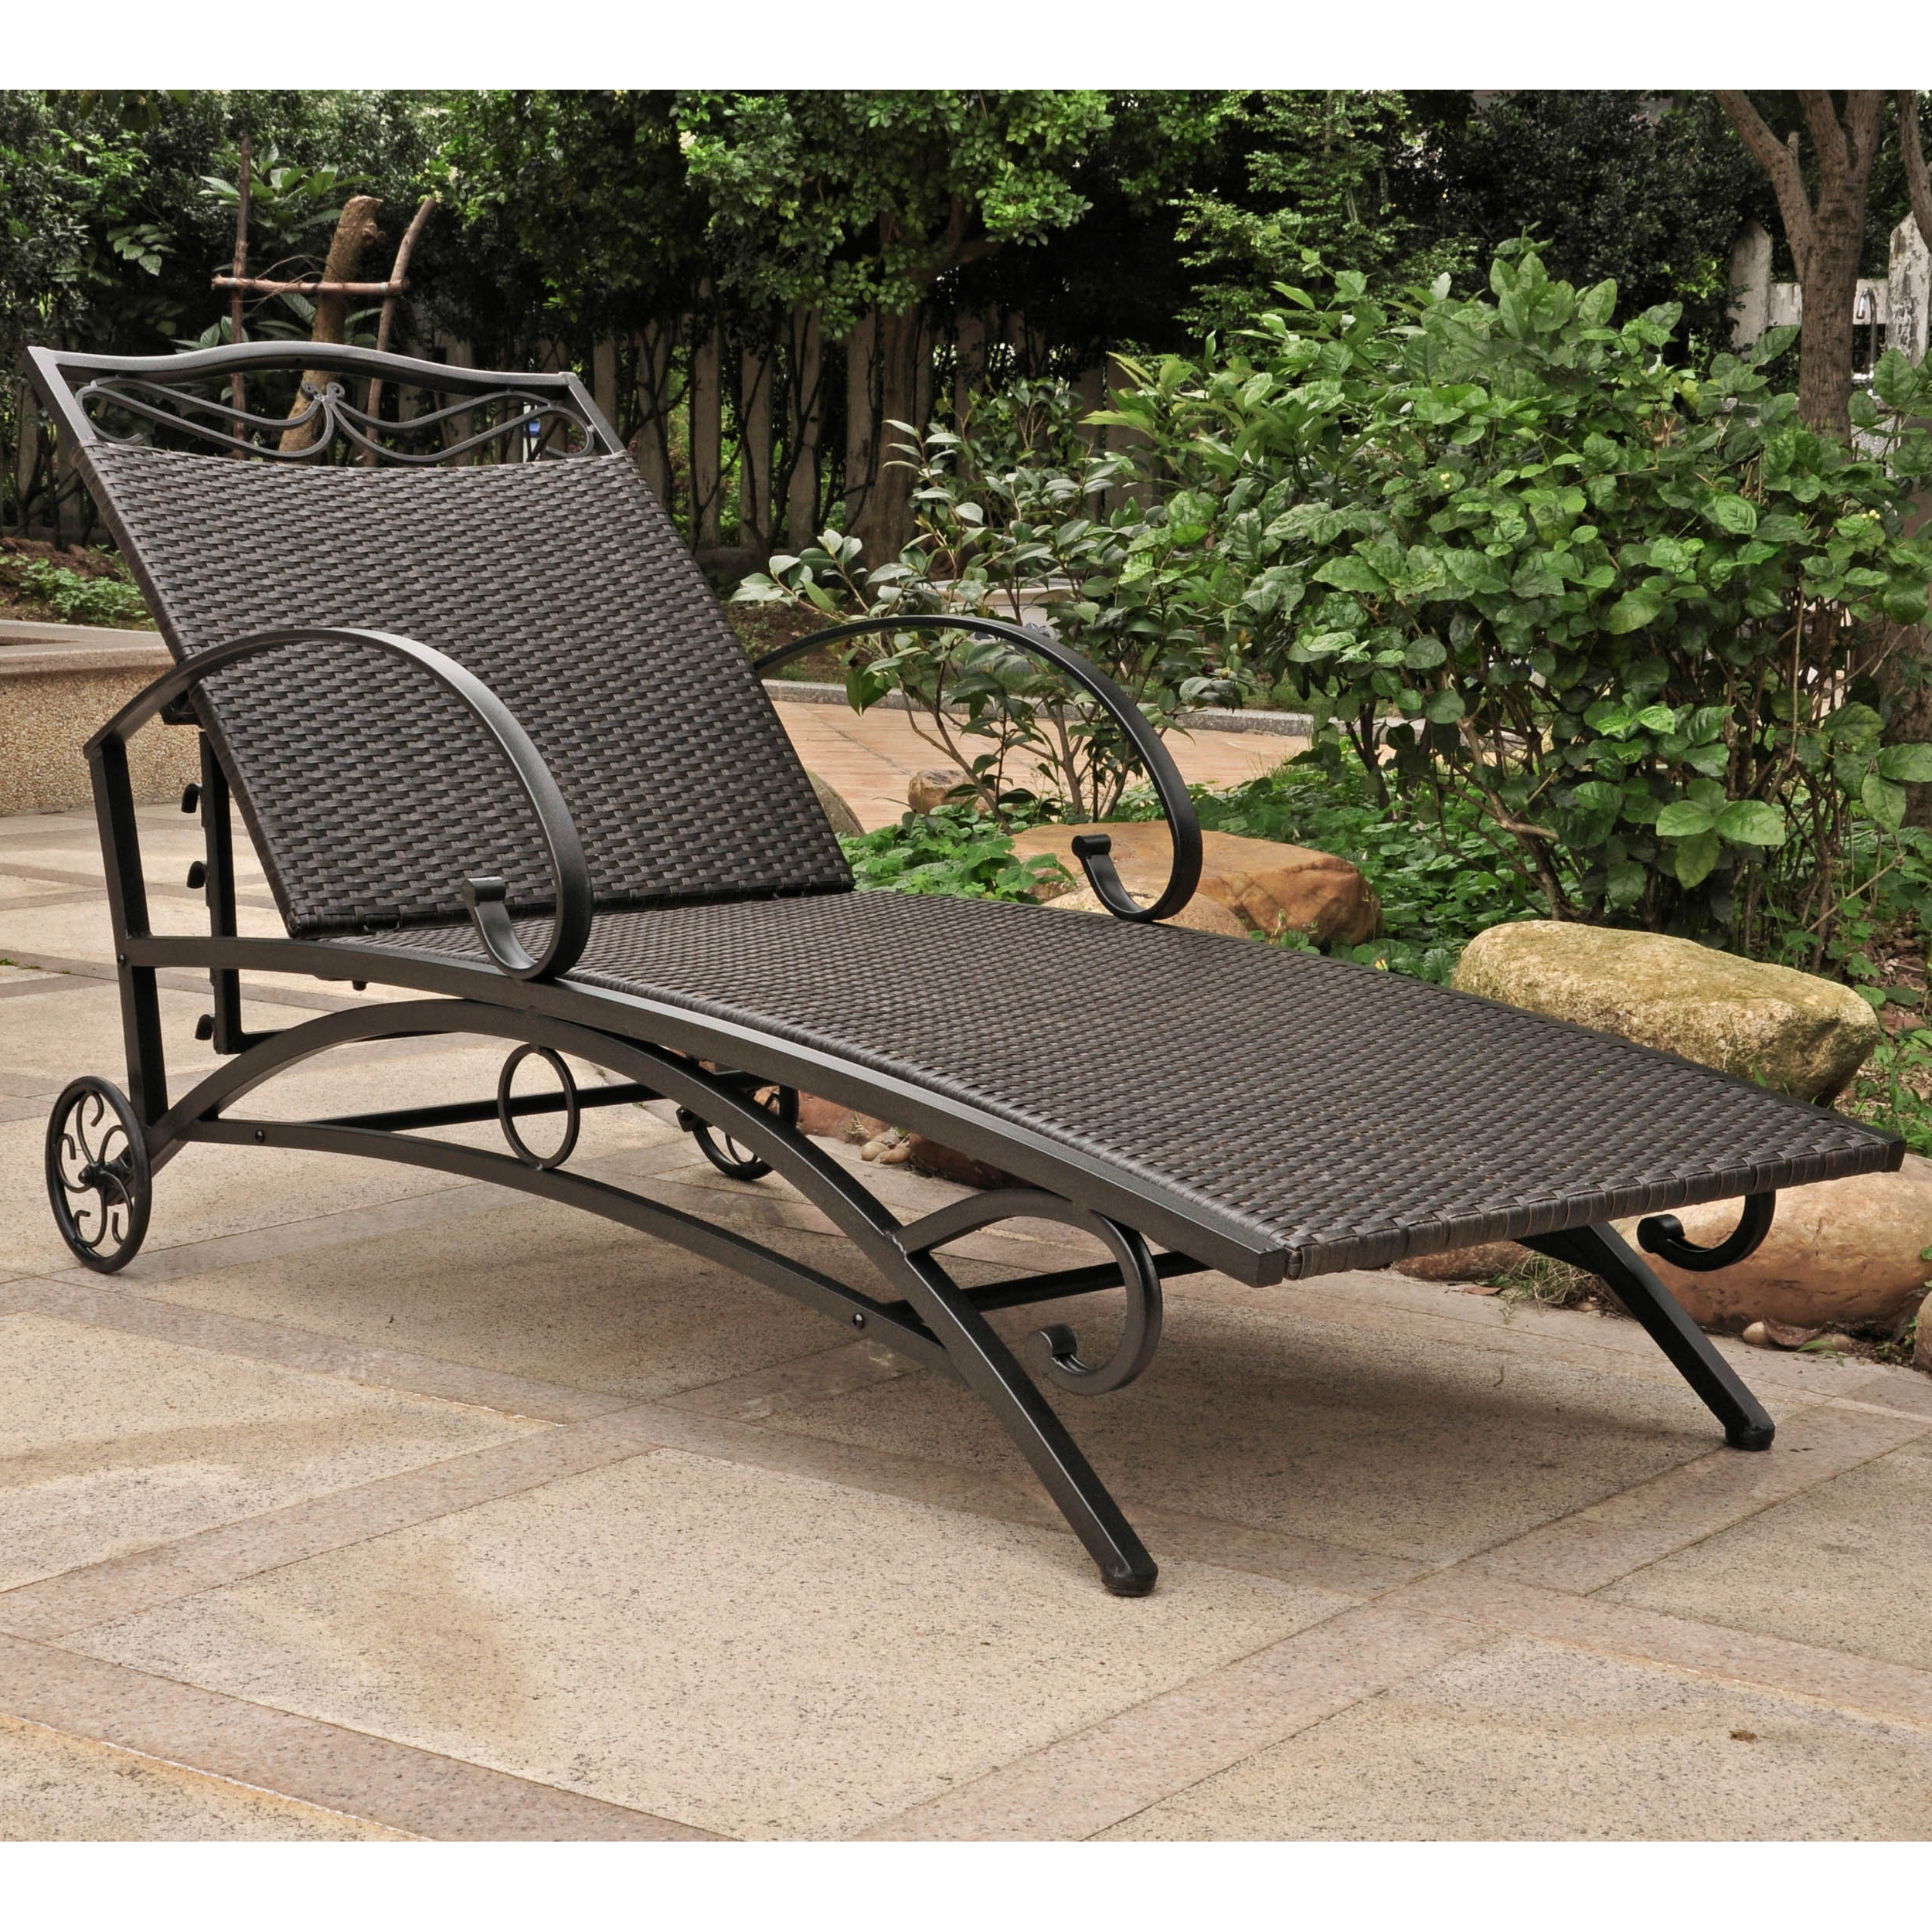 International Caravan Valencia Resin Wicker/ Steel Multi Position Chaise  Lounge With Regard To 2019 Outdoor Multi Position Chaise Lounges (View 6 of 25)